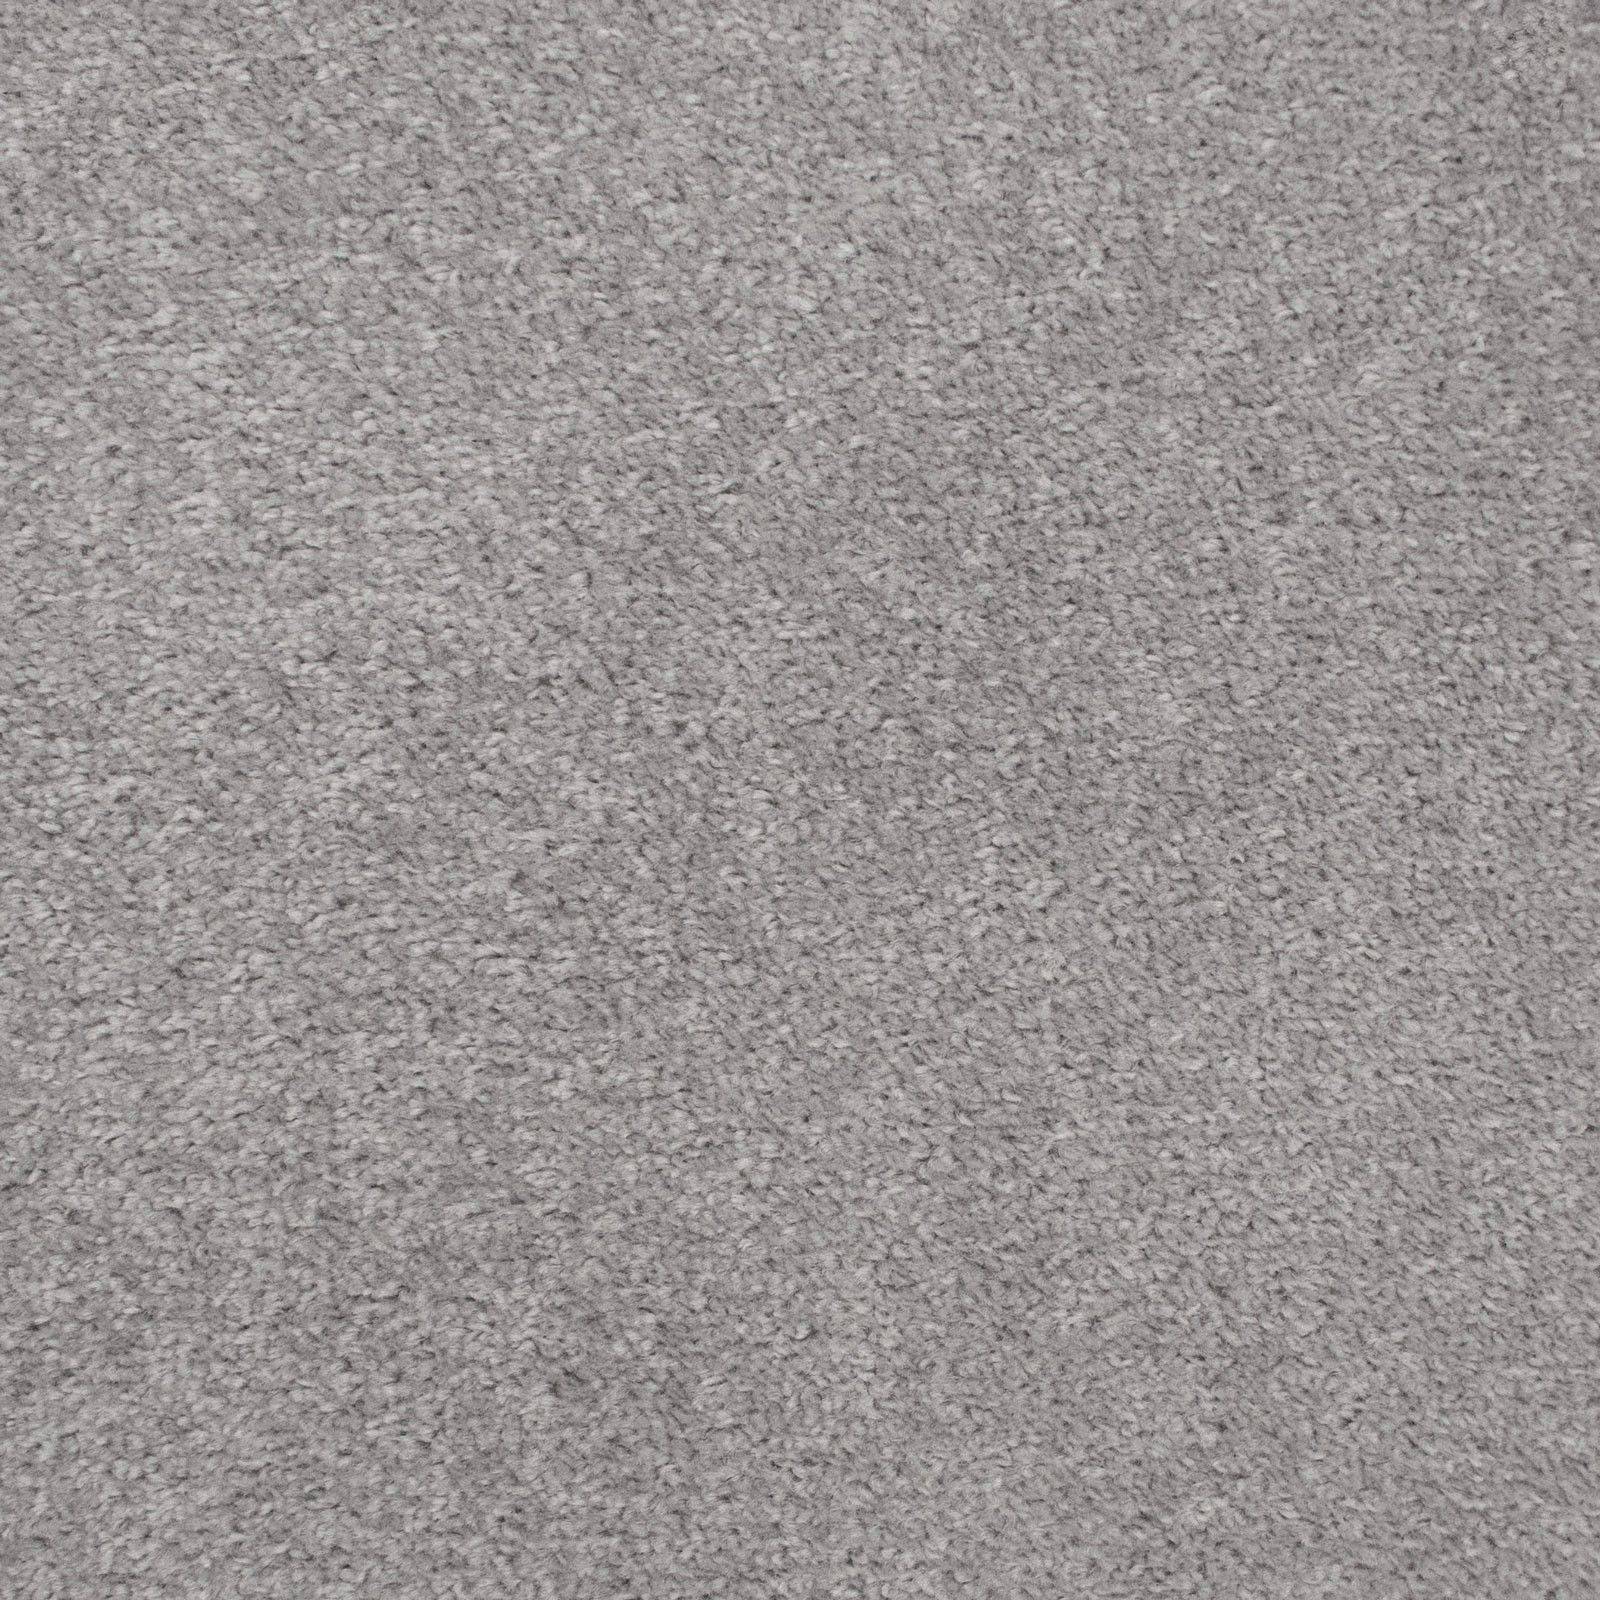 Grey Belton Feltback Twist Carpet Buy This Online Free Samples Are Available On